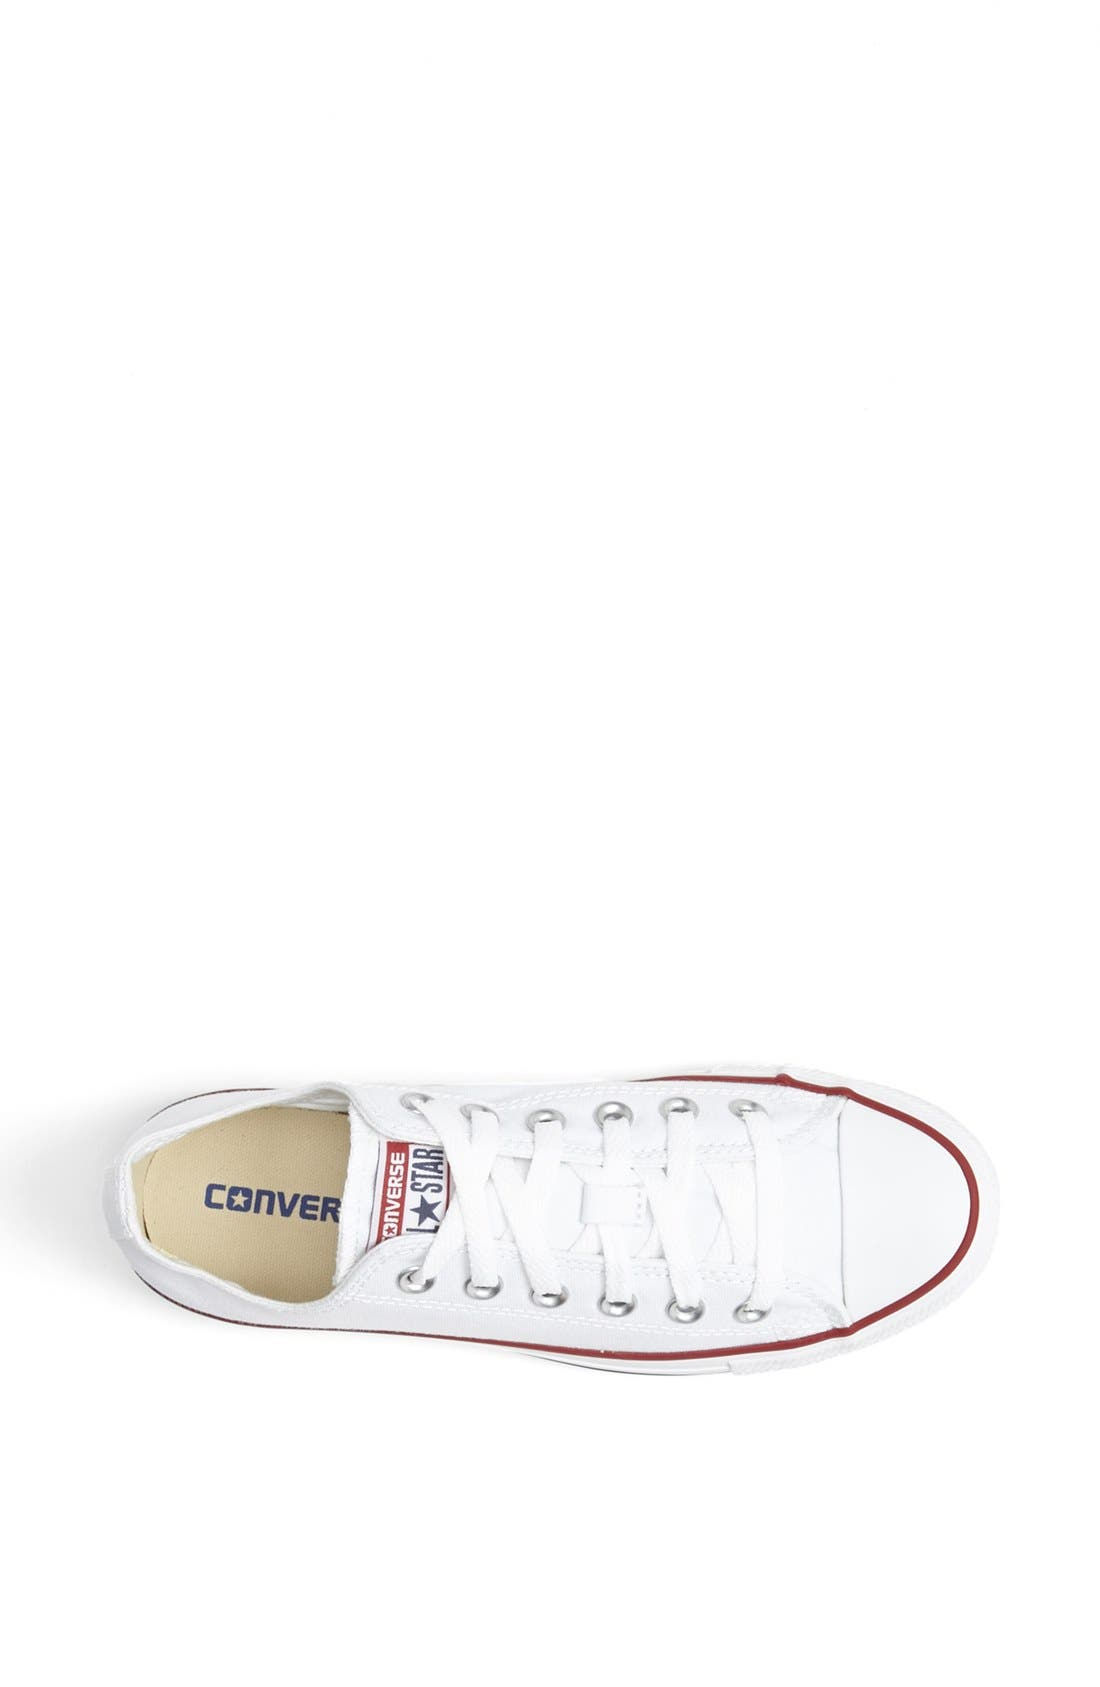 Chuck Taylor<sup>®</sup> Low Sneaker,                             Alternate thumbnail 9, color,                             100